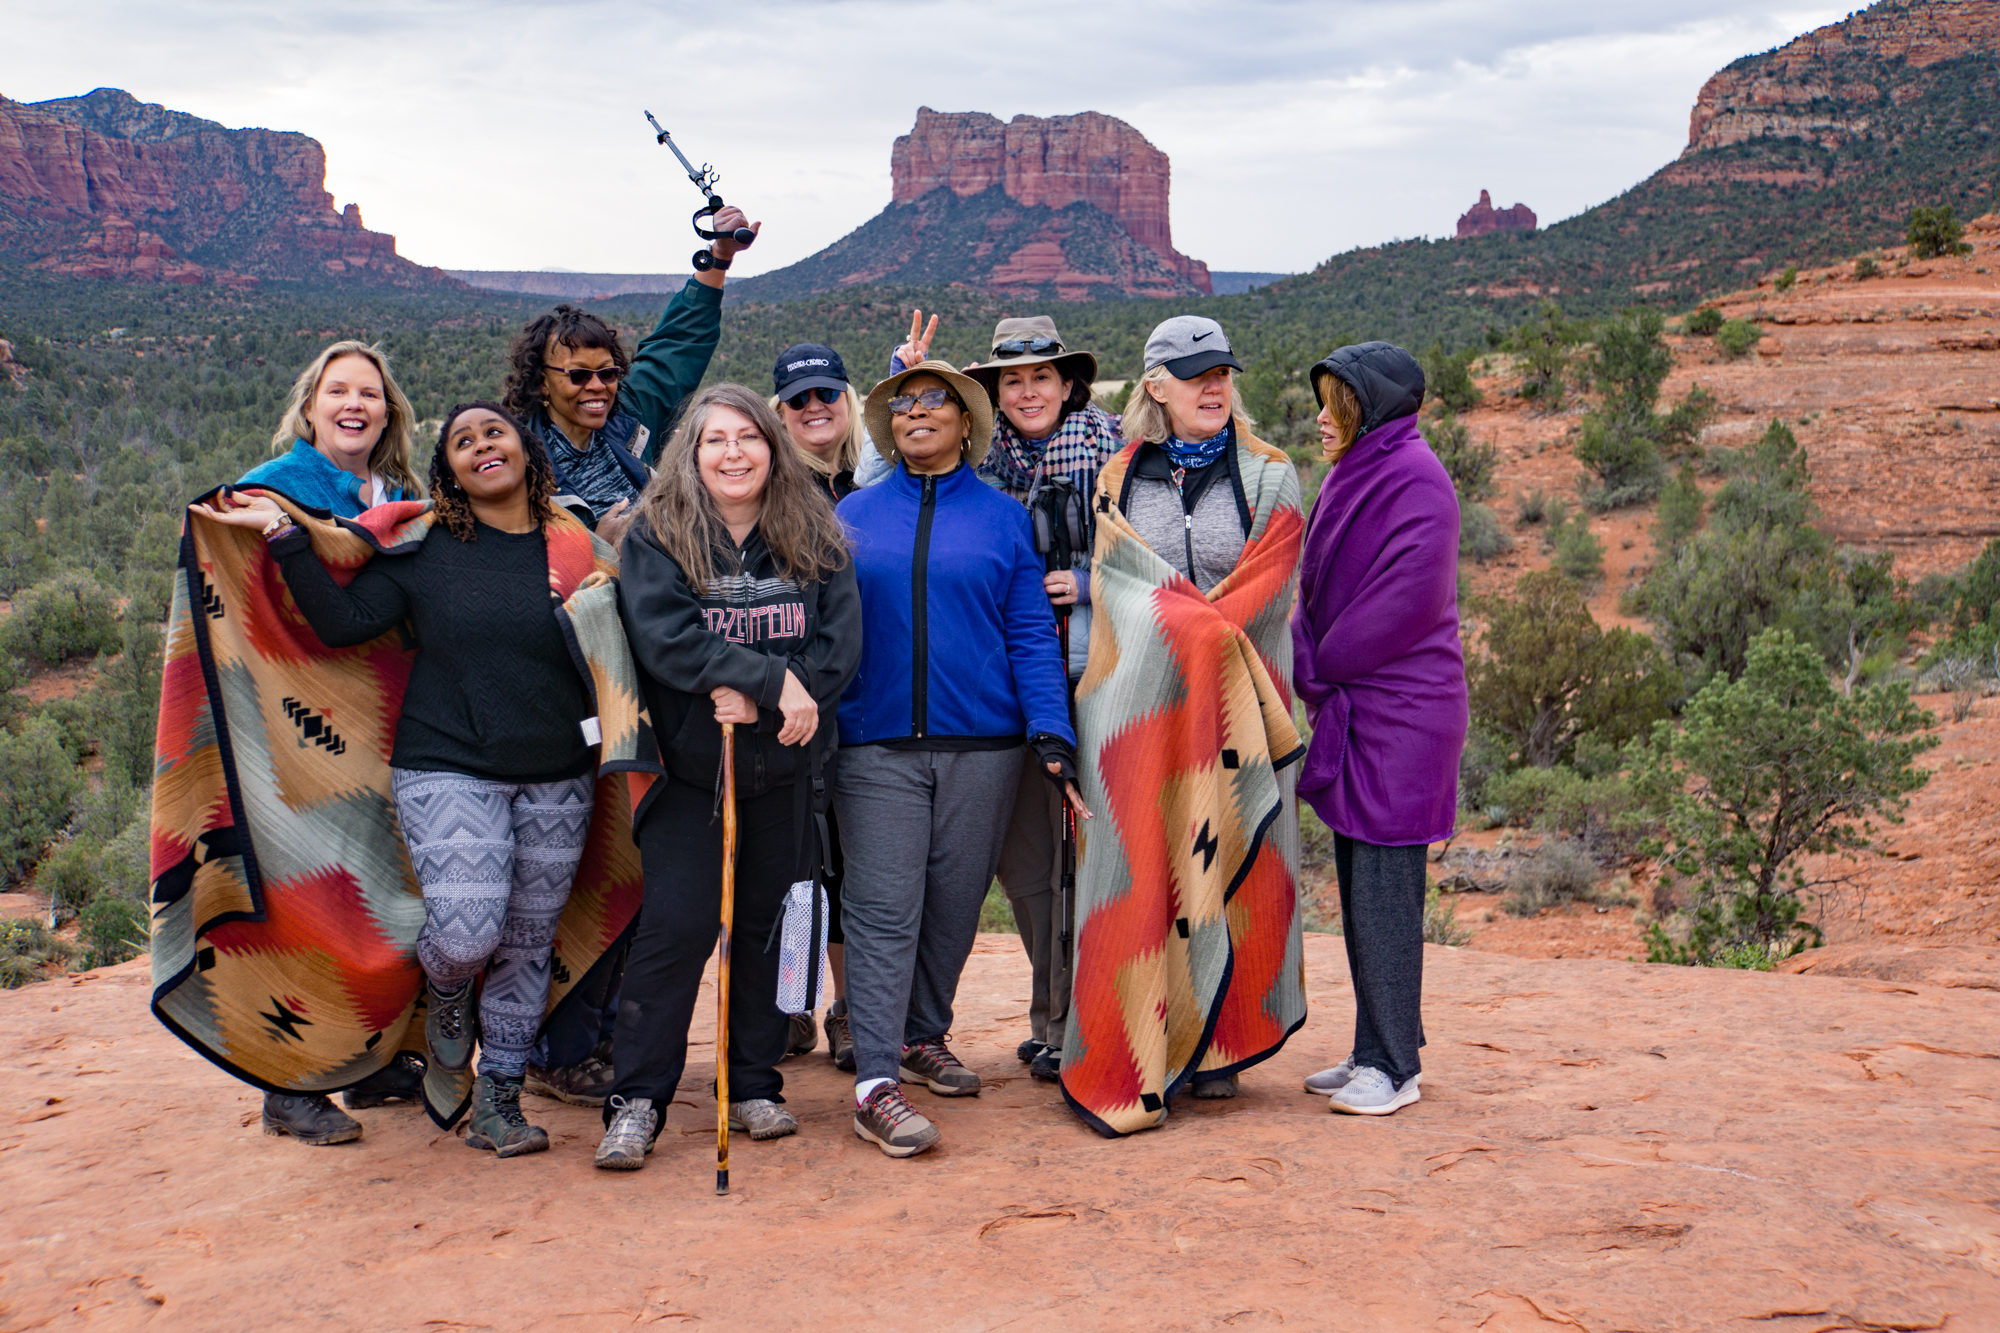 3rd Annual Awakening Hope Retreat in Sedona Arizona - Healthy Living With Hope - Hope's Yoga designed and lead by Hope Knosher